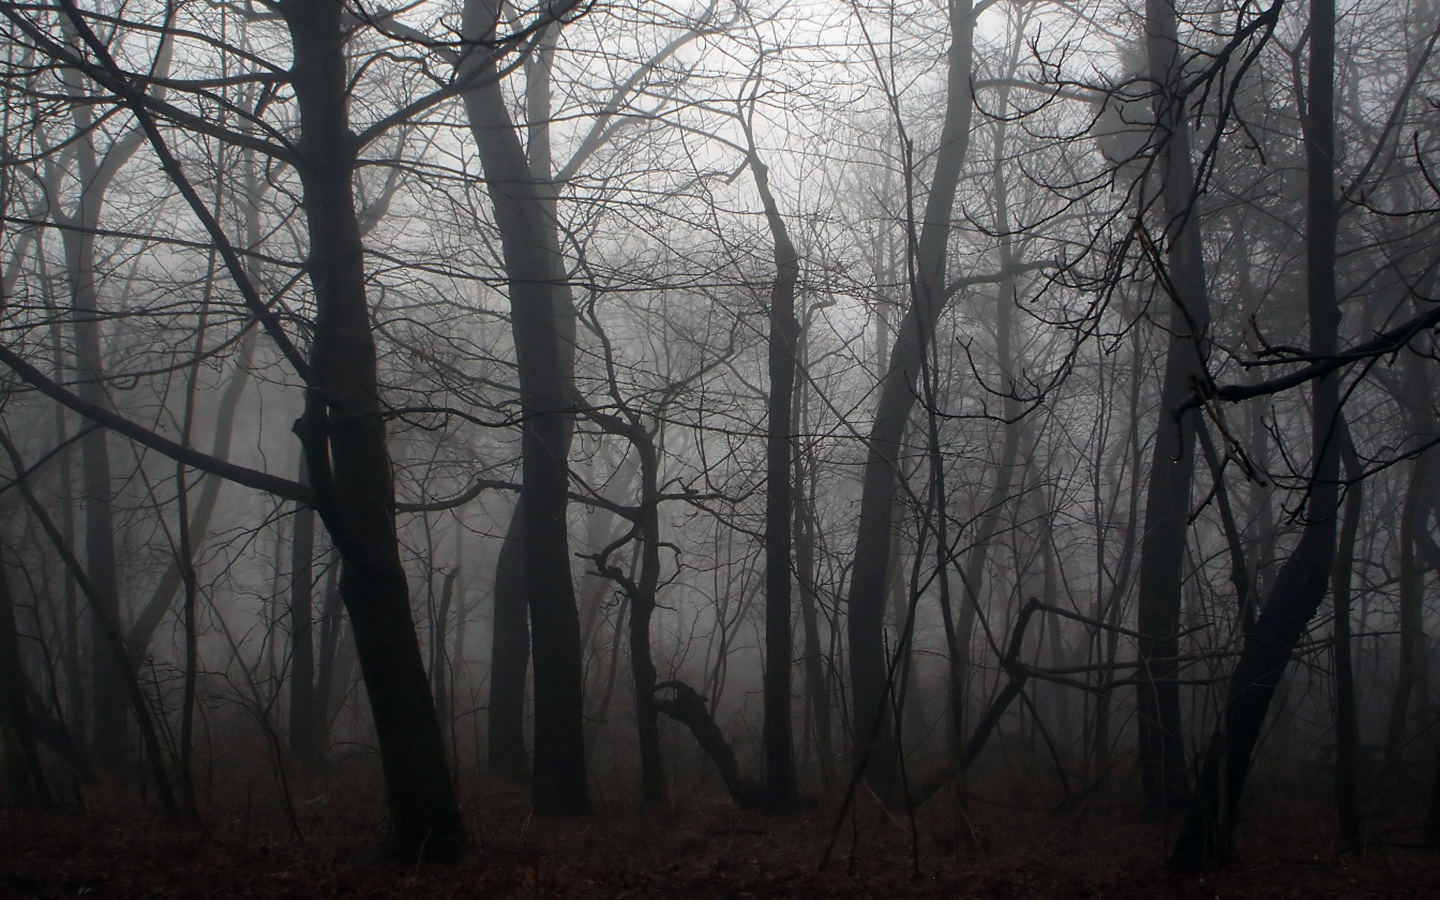 Spooky Forest Backgrounds 18574 1440x900 Px Hdwallsource Com